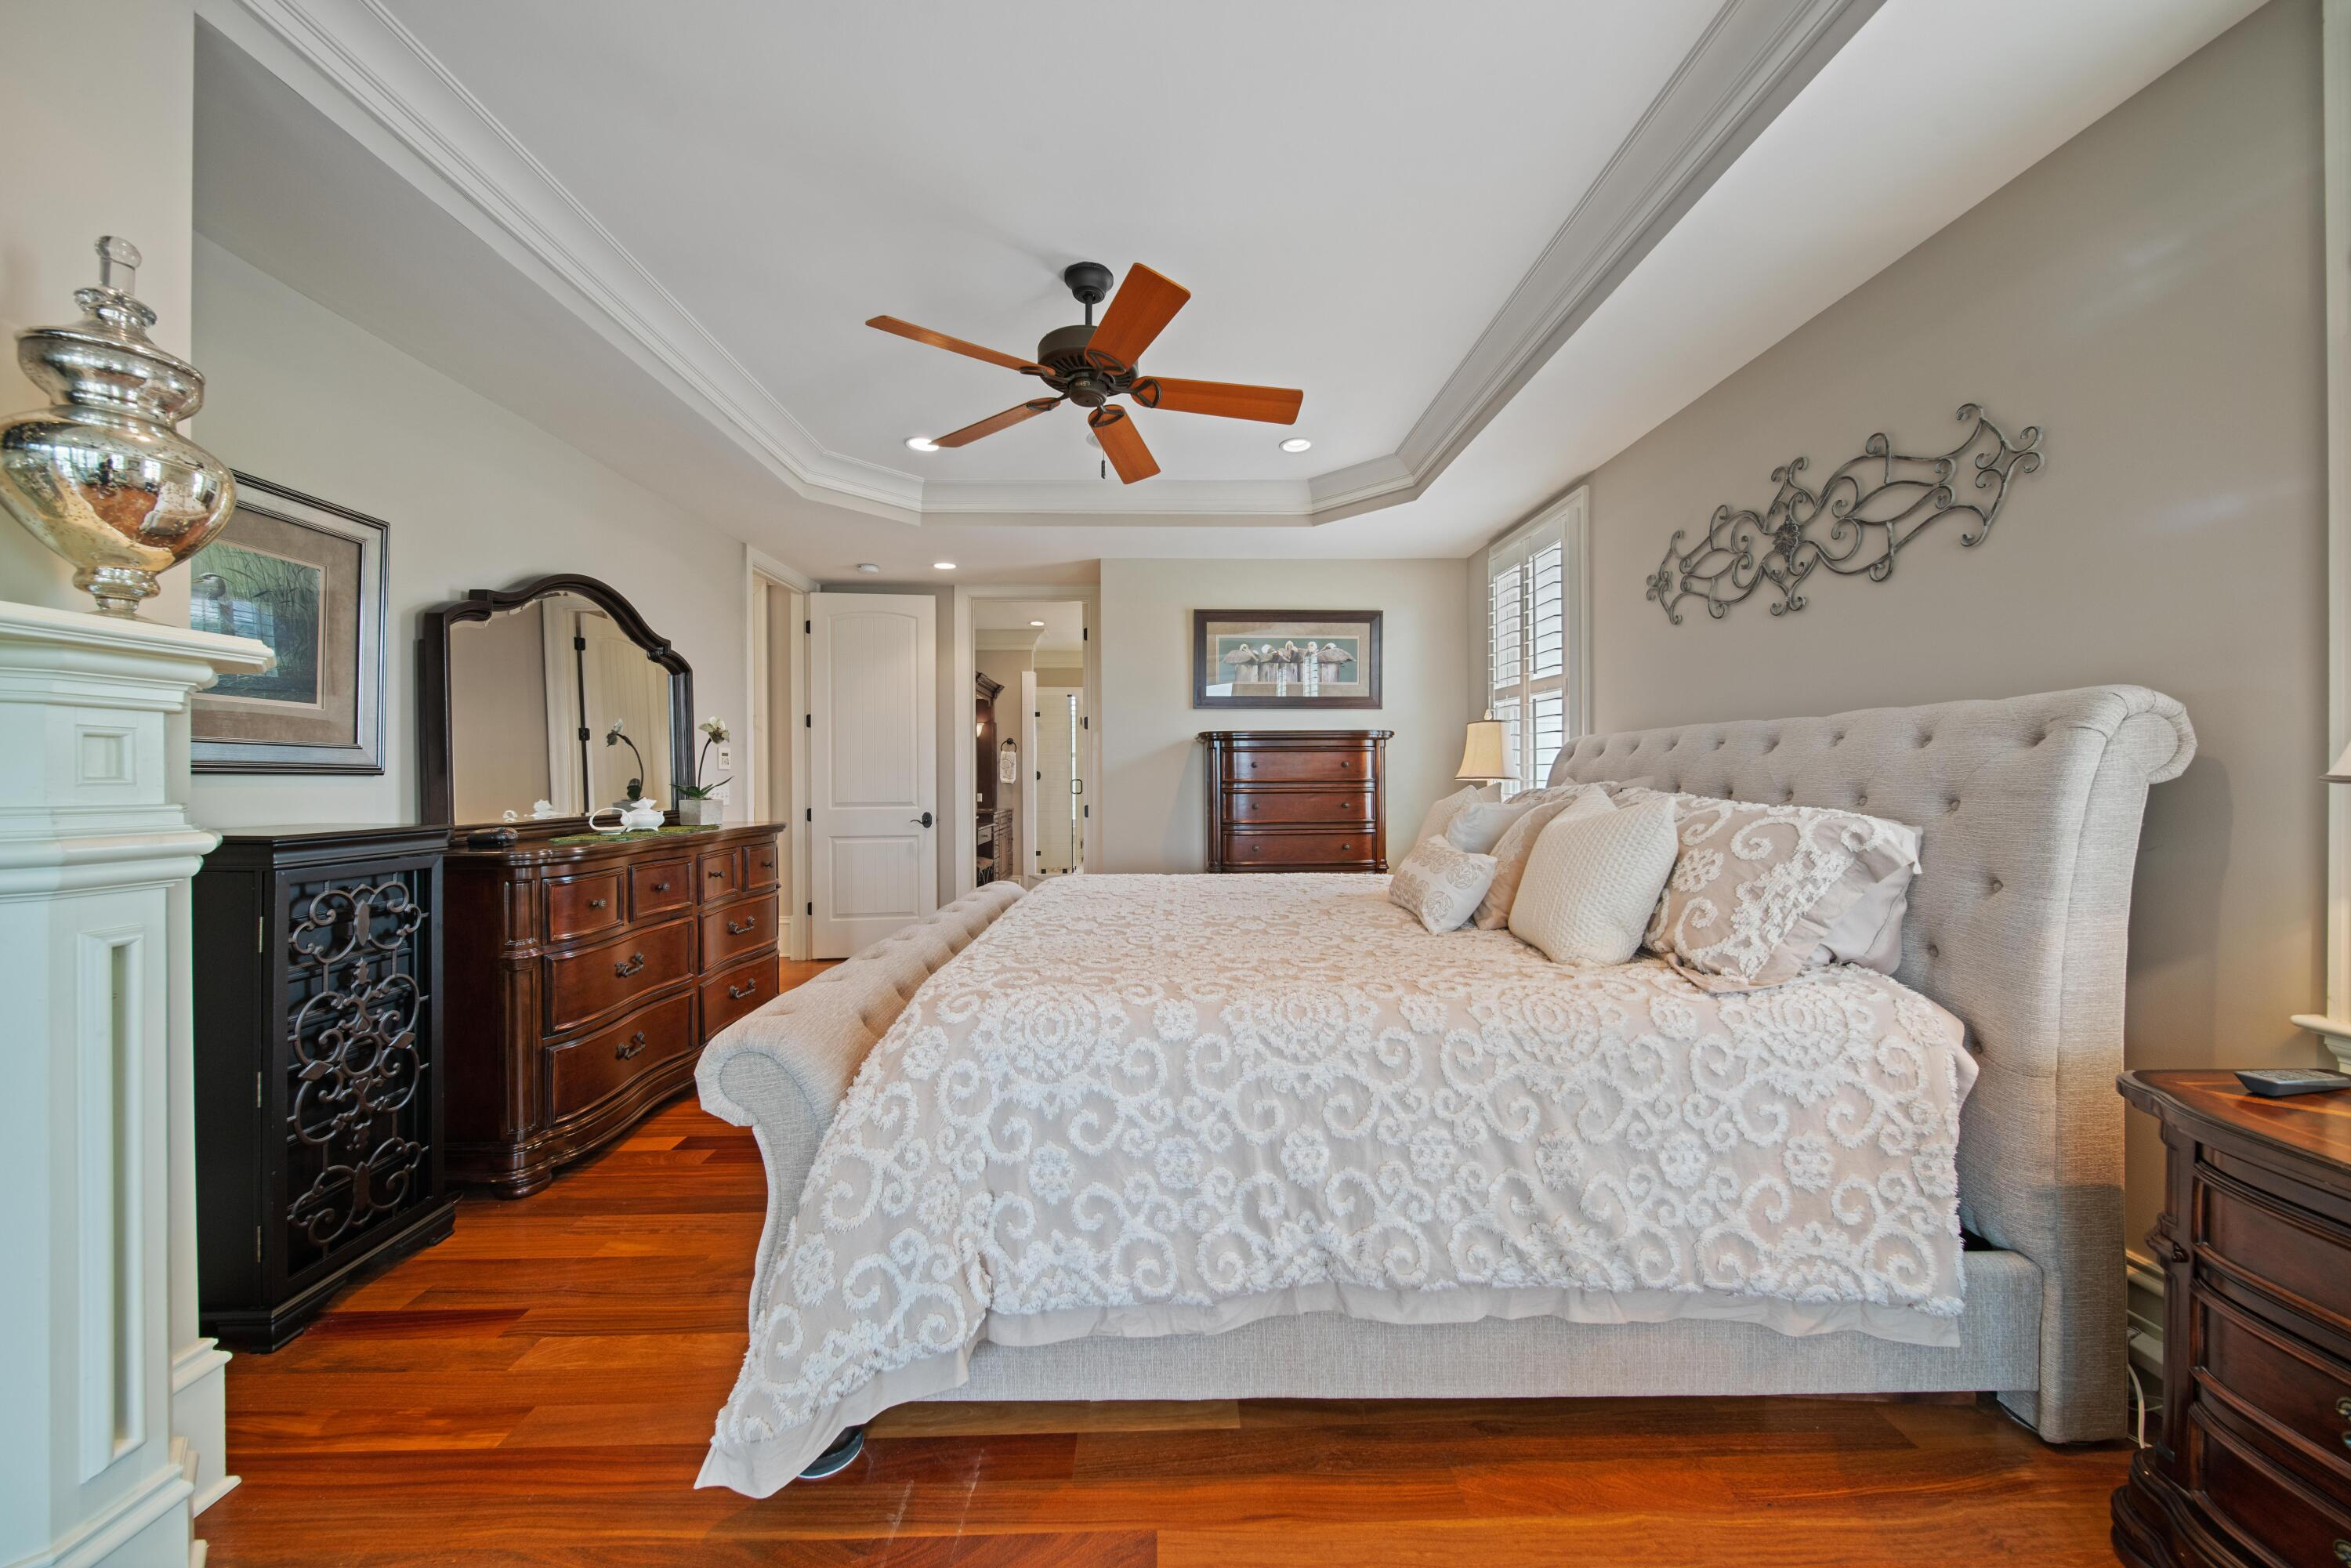 Rivertowne Country Club Homes For Sale - 1652 Rivertowne Country Club, Mount Pleasant, SC - 41